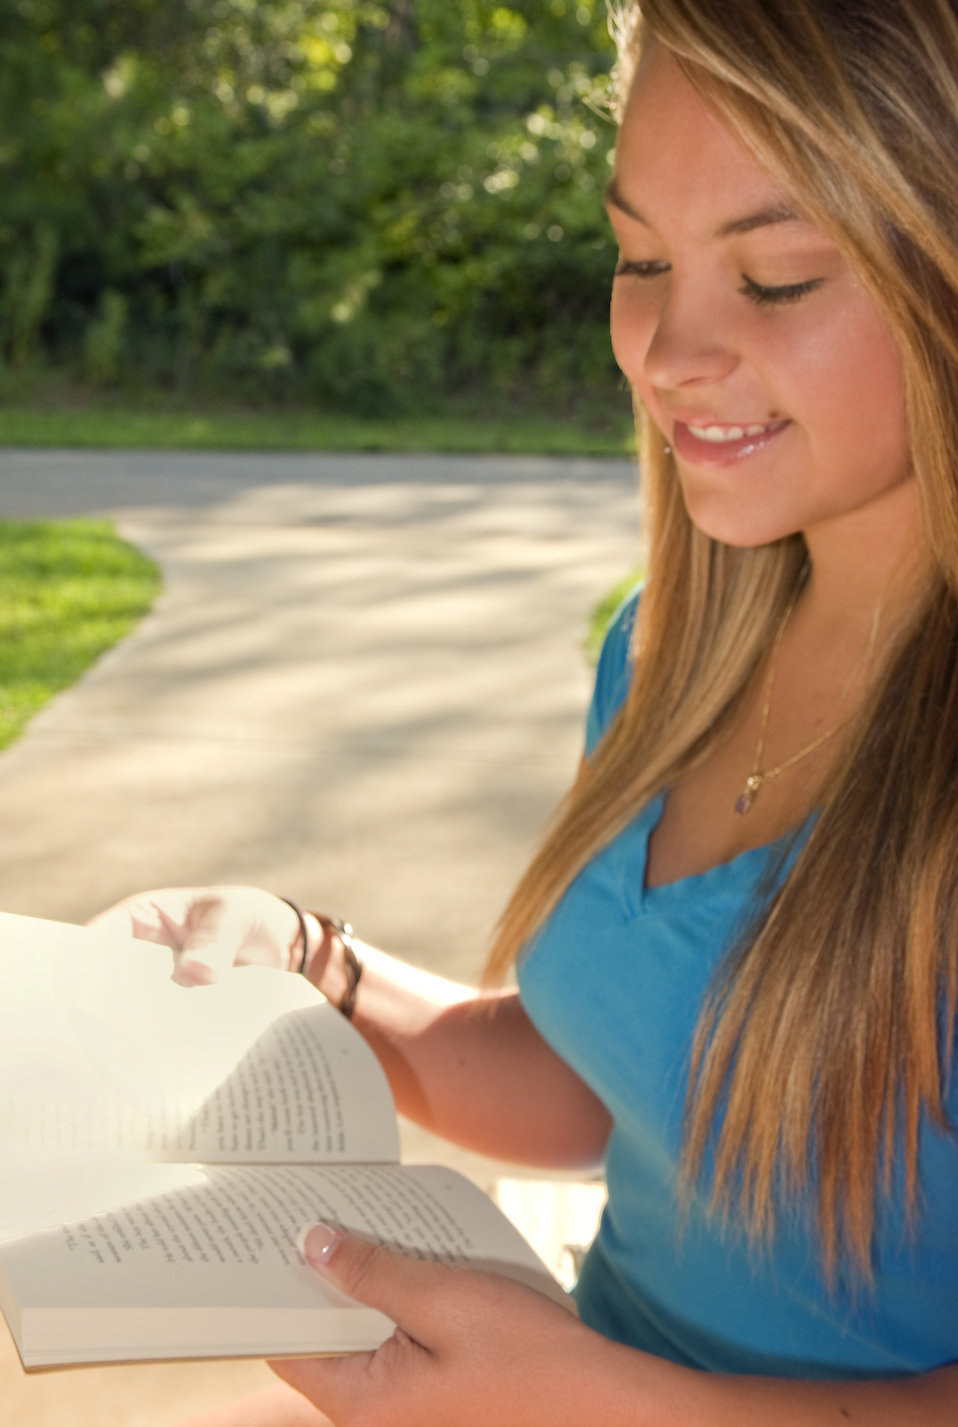 A young woman reading a book outdoors : Free Stock Photo